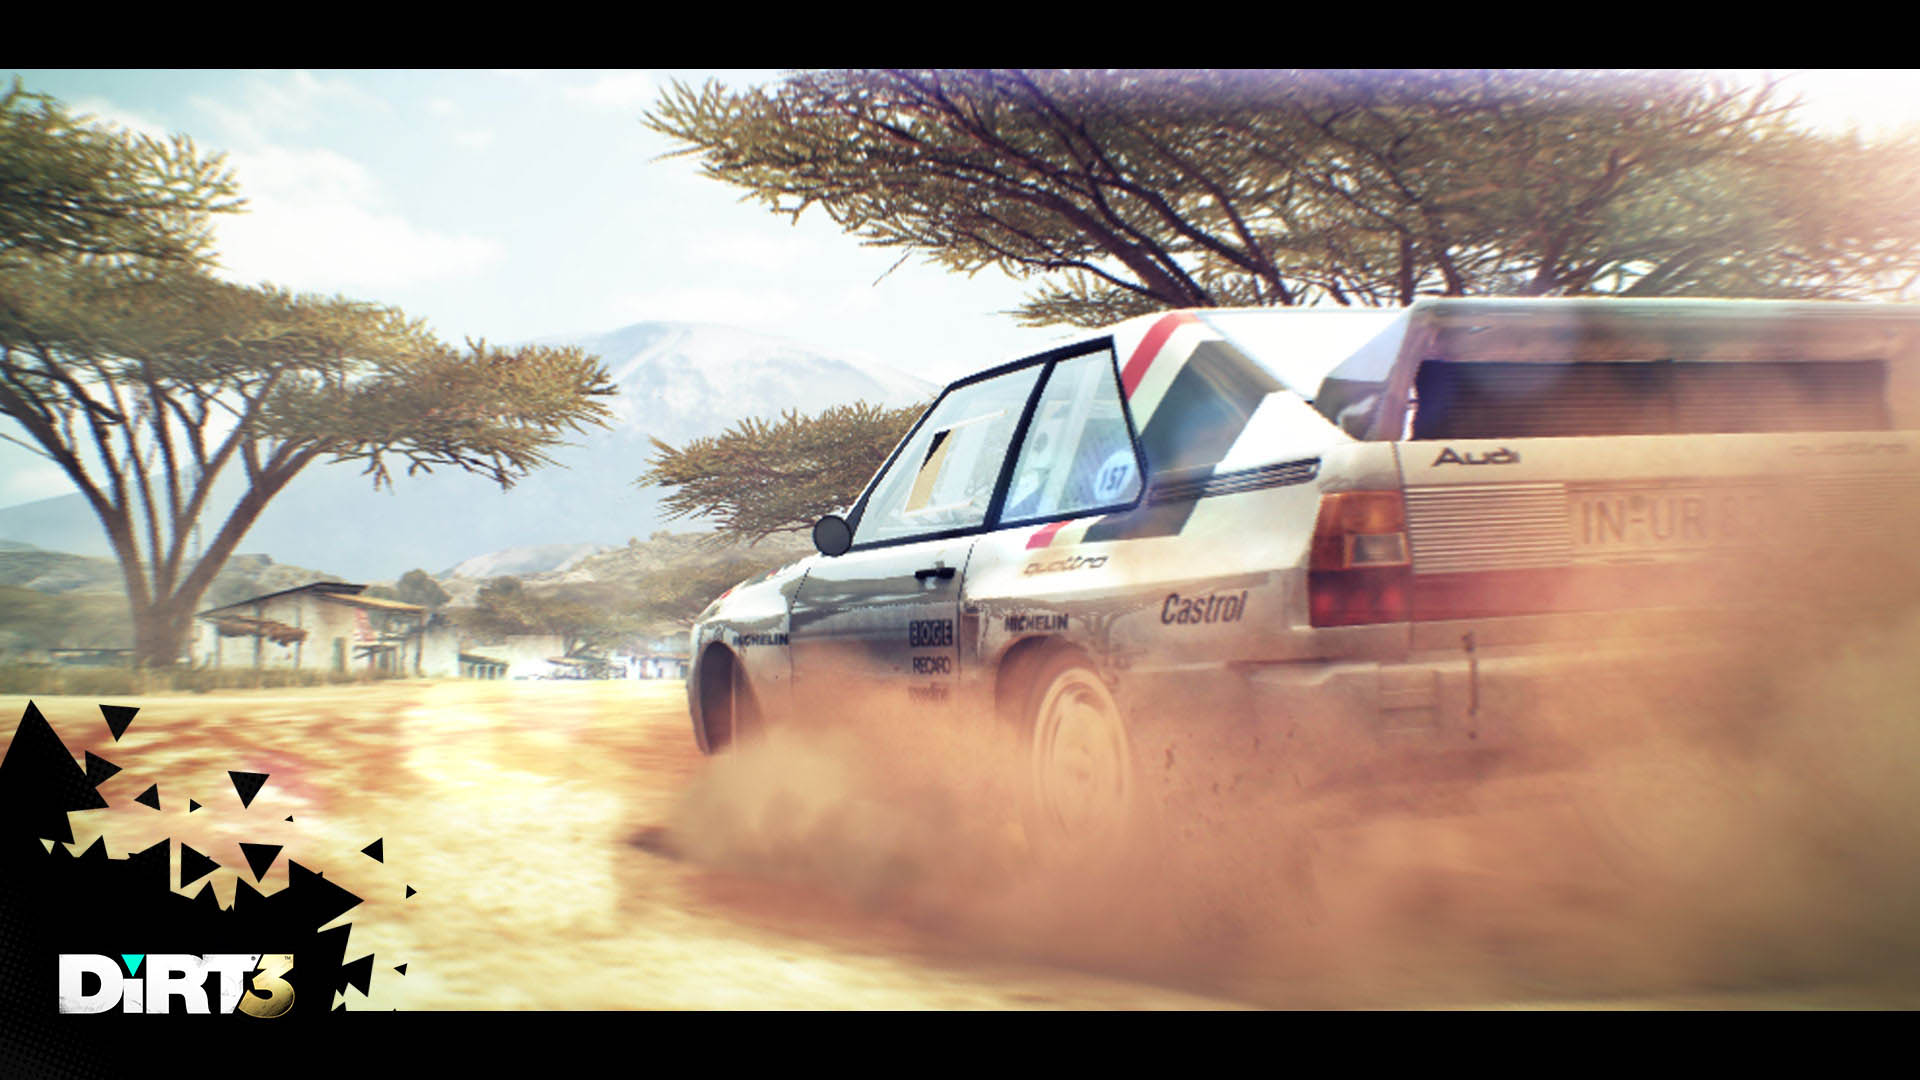 Image - DiRT 3 Complete Edition Artwork 6.jpg Steam Trading Cards Wiki Fandom powered by Wikia